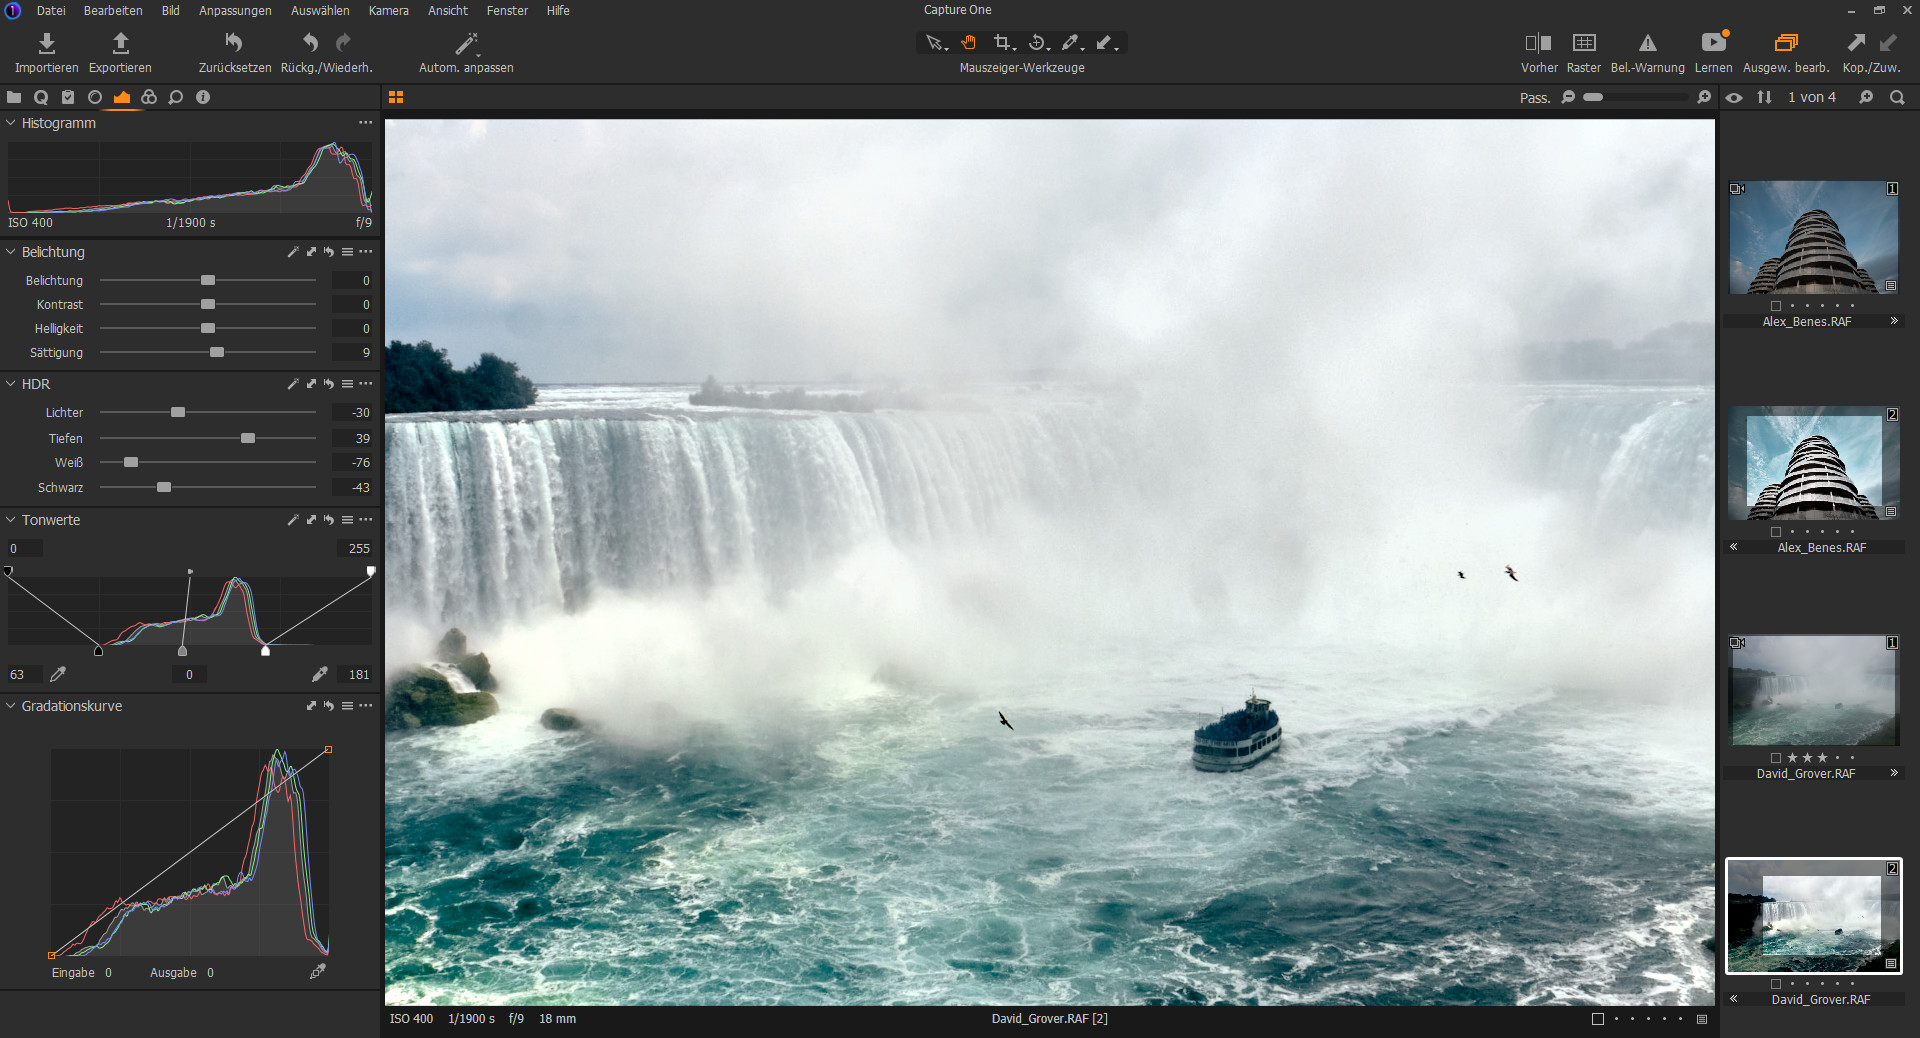 Screenshot 1 - Capture One Express für Nikon-Kameras